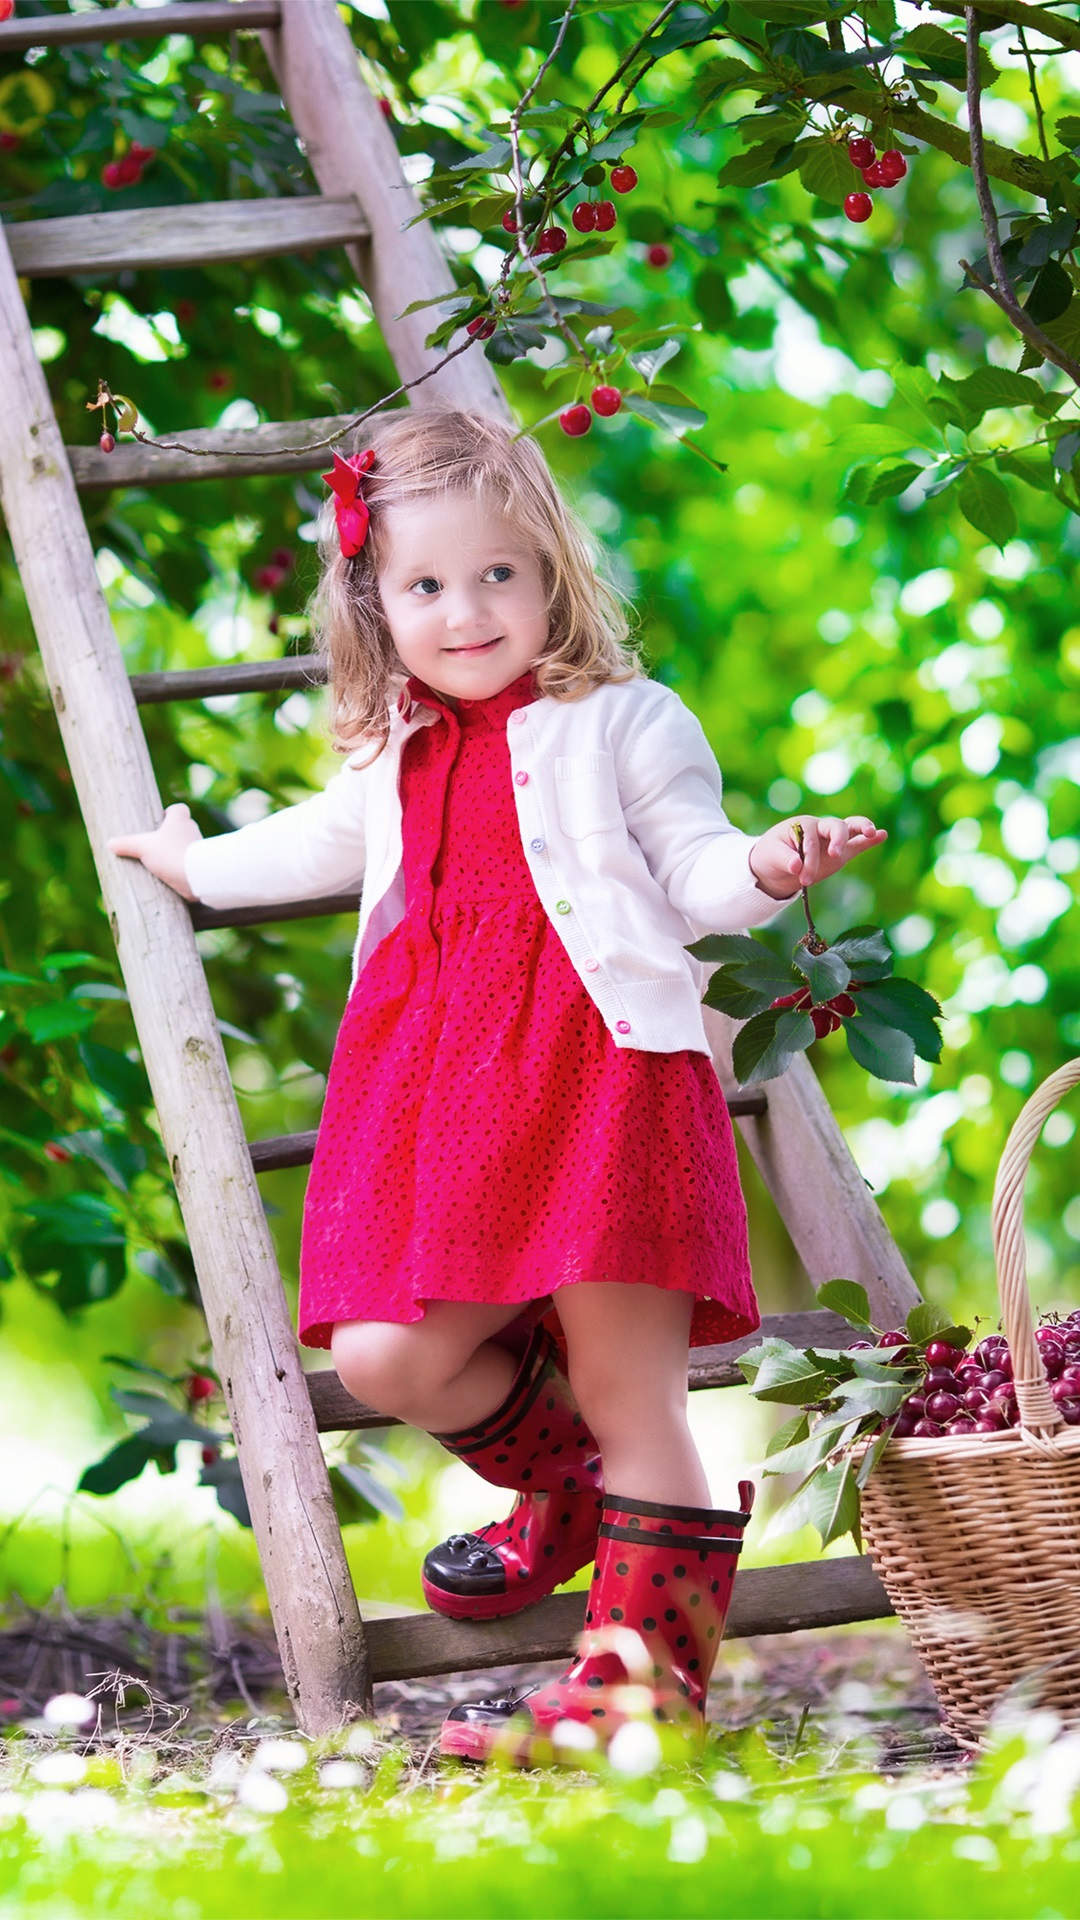 cute baby, girl, red cherry, garden, summer, staircase iphone 8,7,6